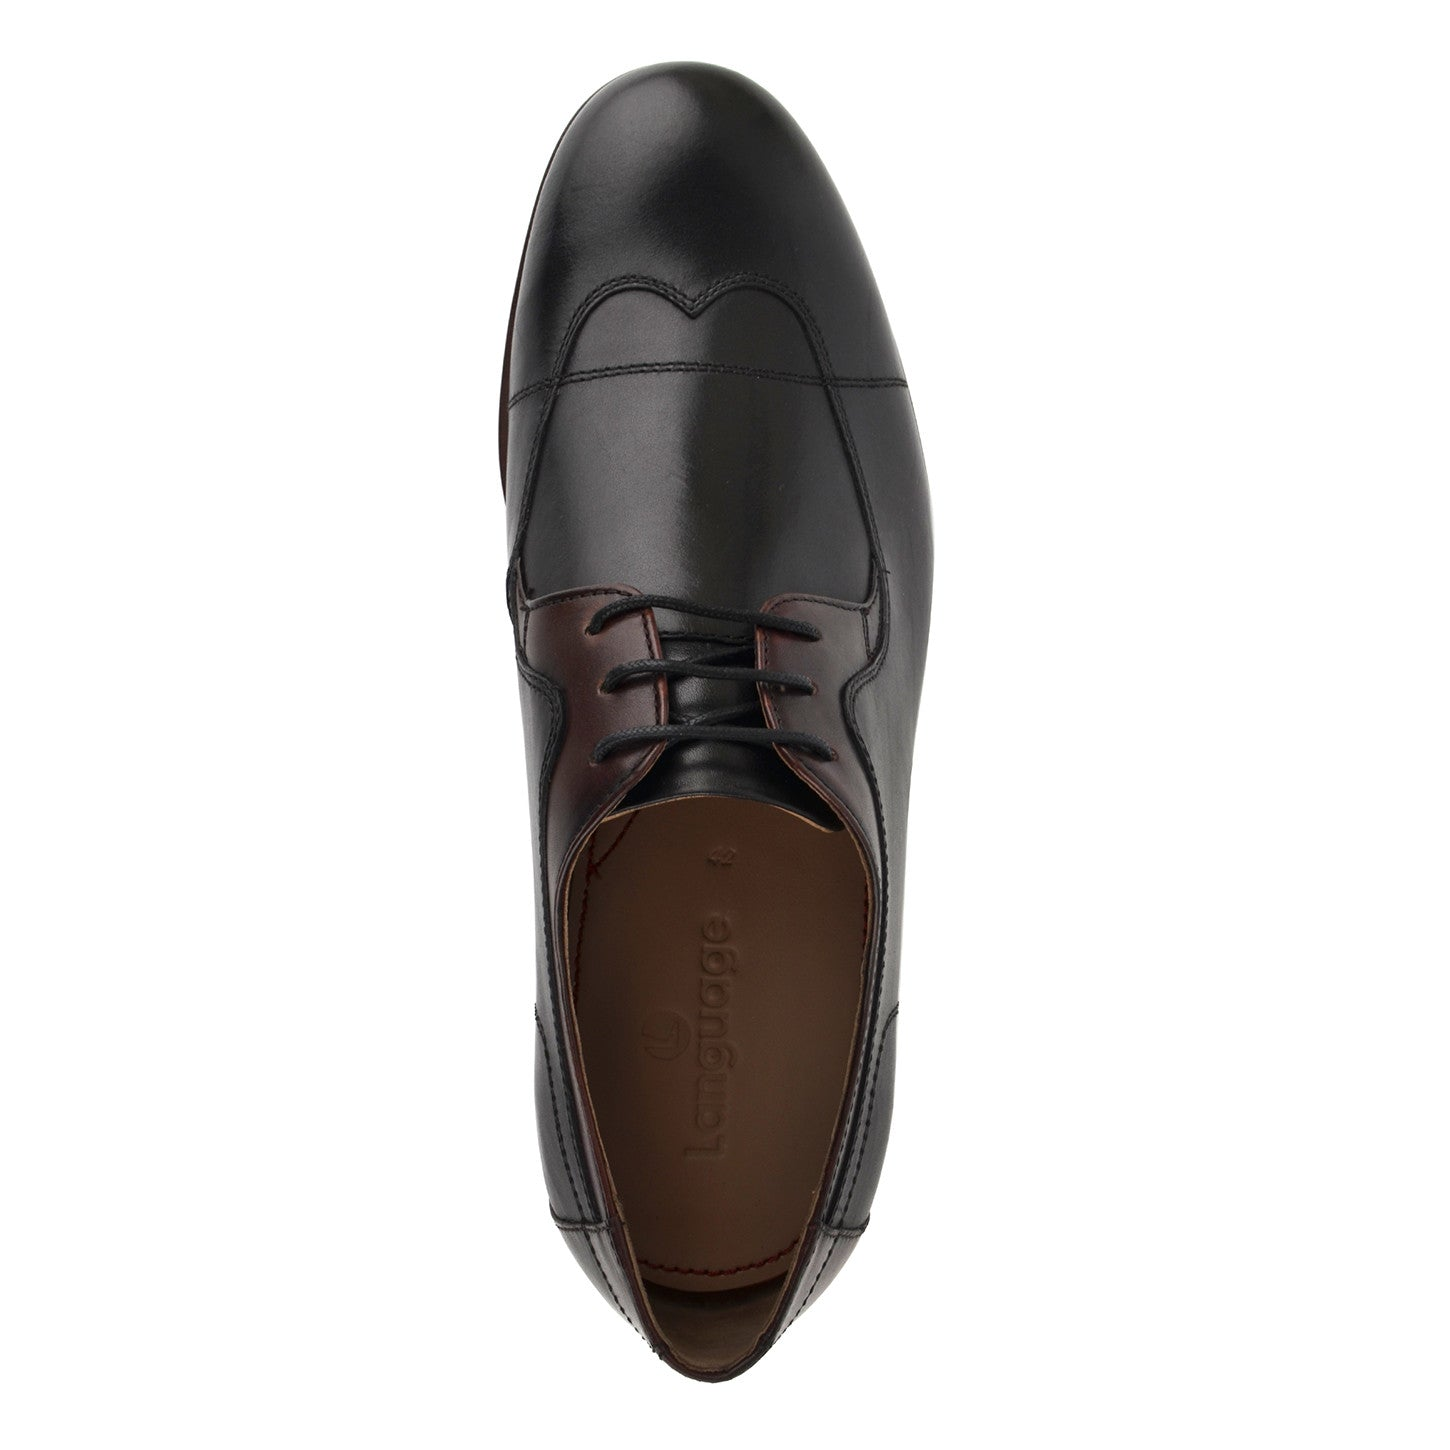 LM521 - Language Hinder Men's Dress Black Derby Shoes